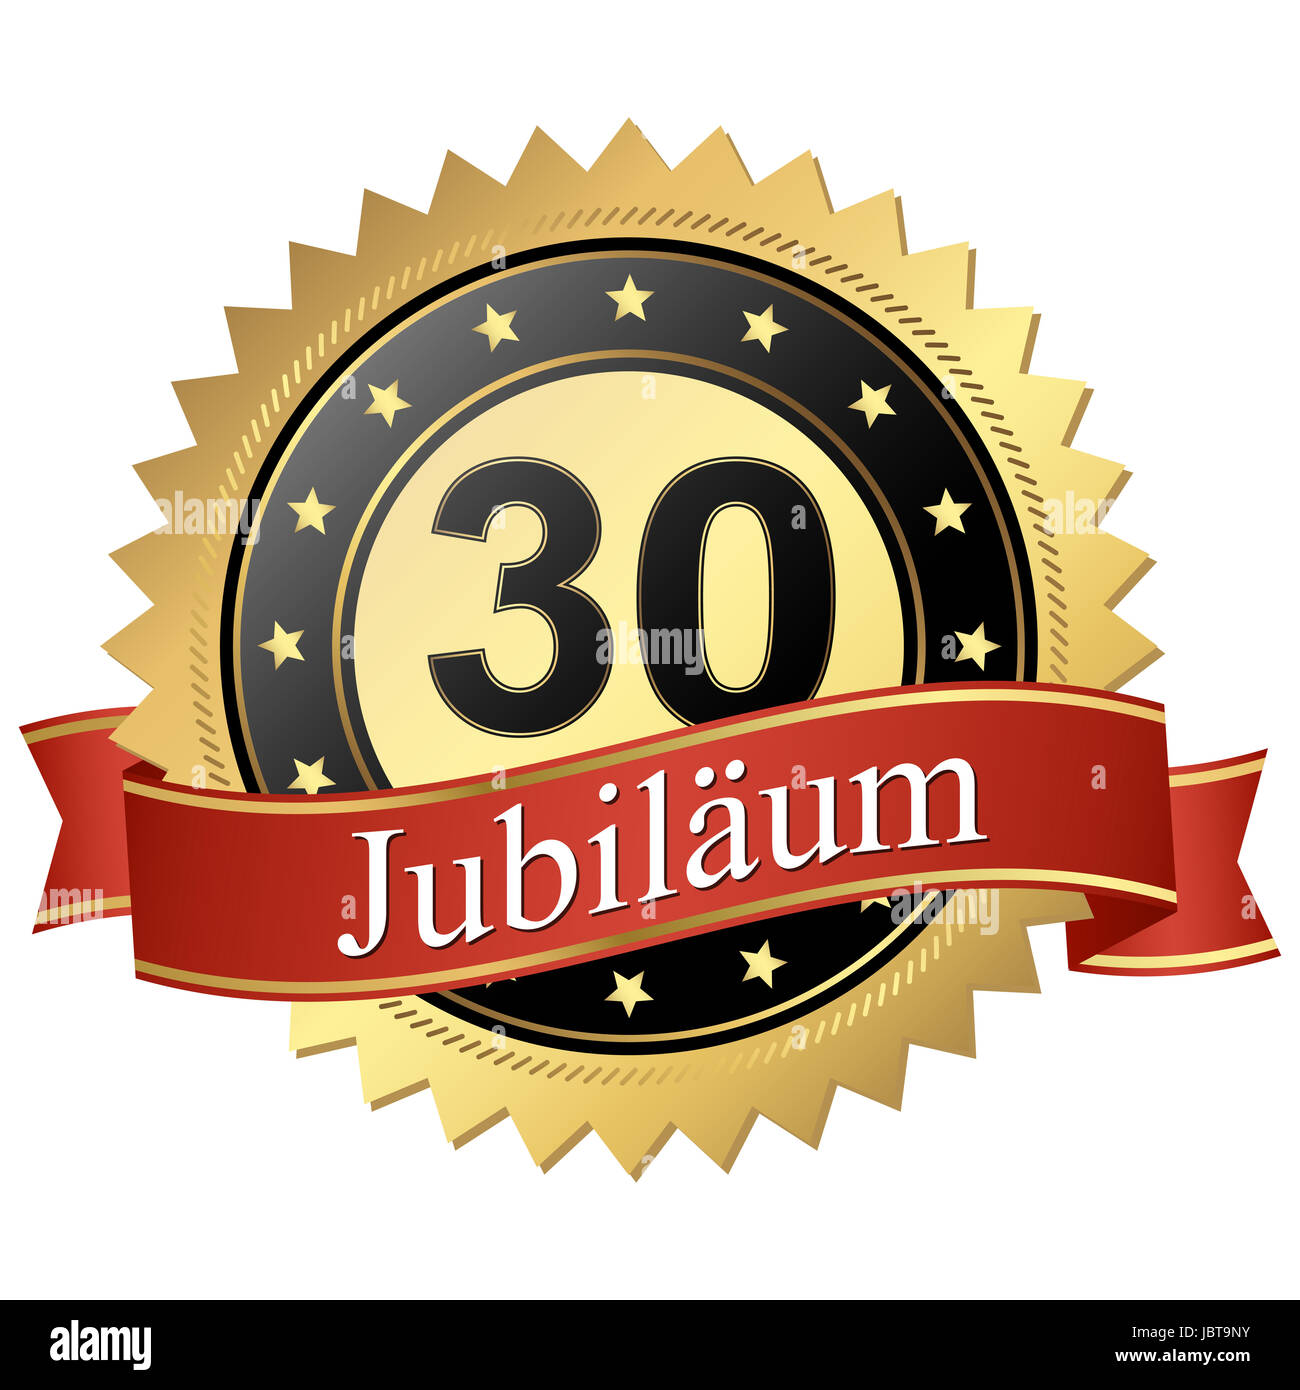 Jubilee button with banners german - 30 Jahre - Stock Image